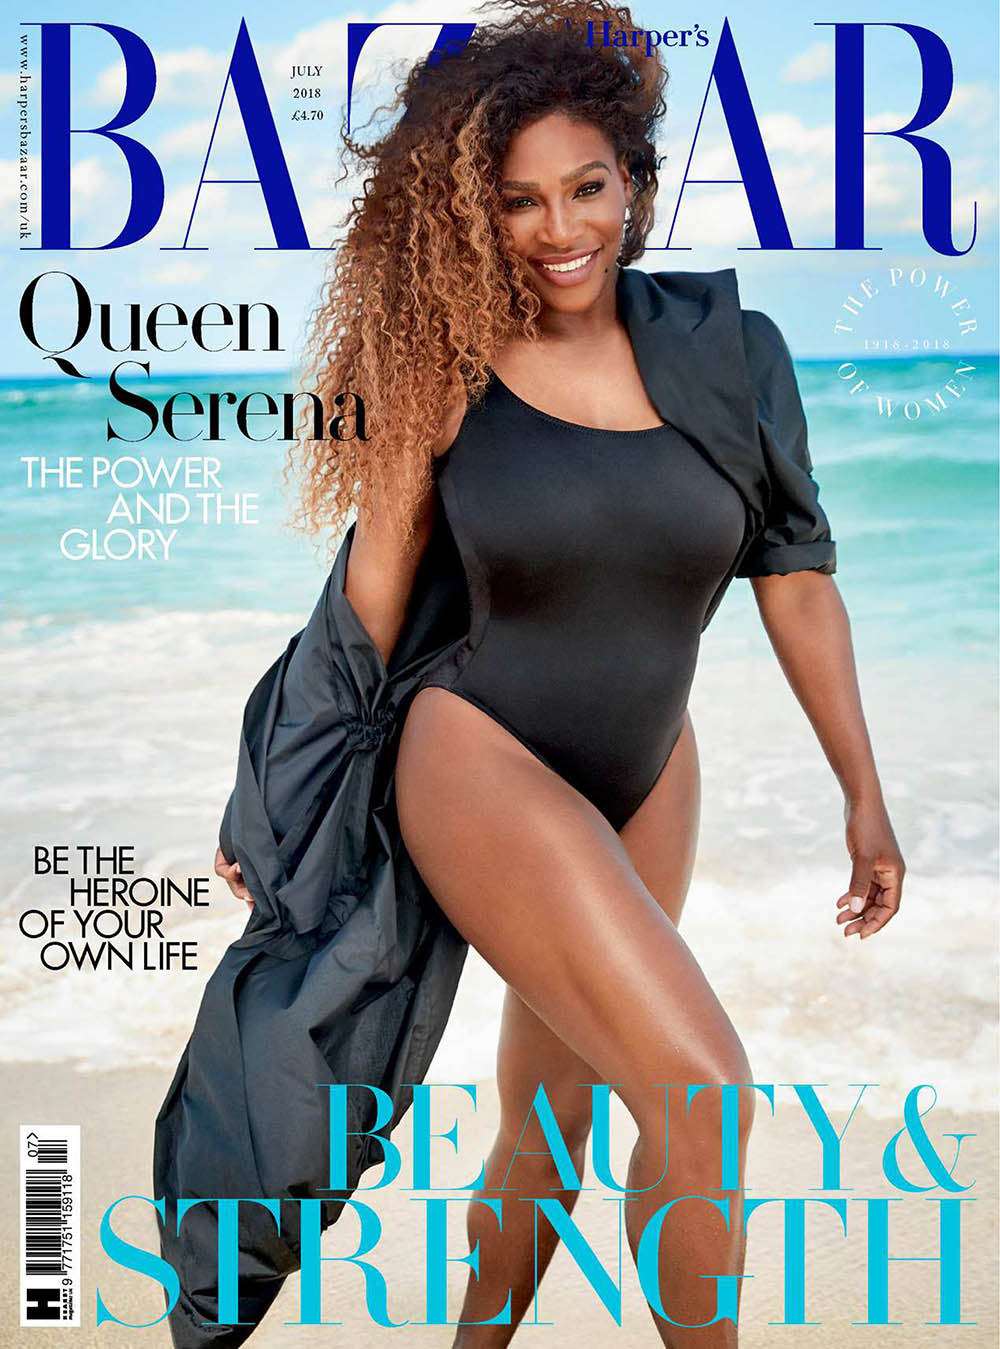 Serena Williams covers Harper's Bazaar UK July 2018 by Richard Phibbs